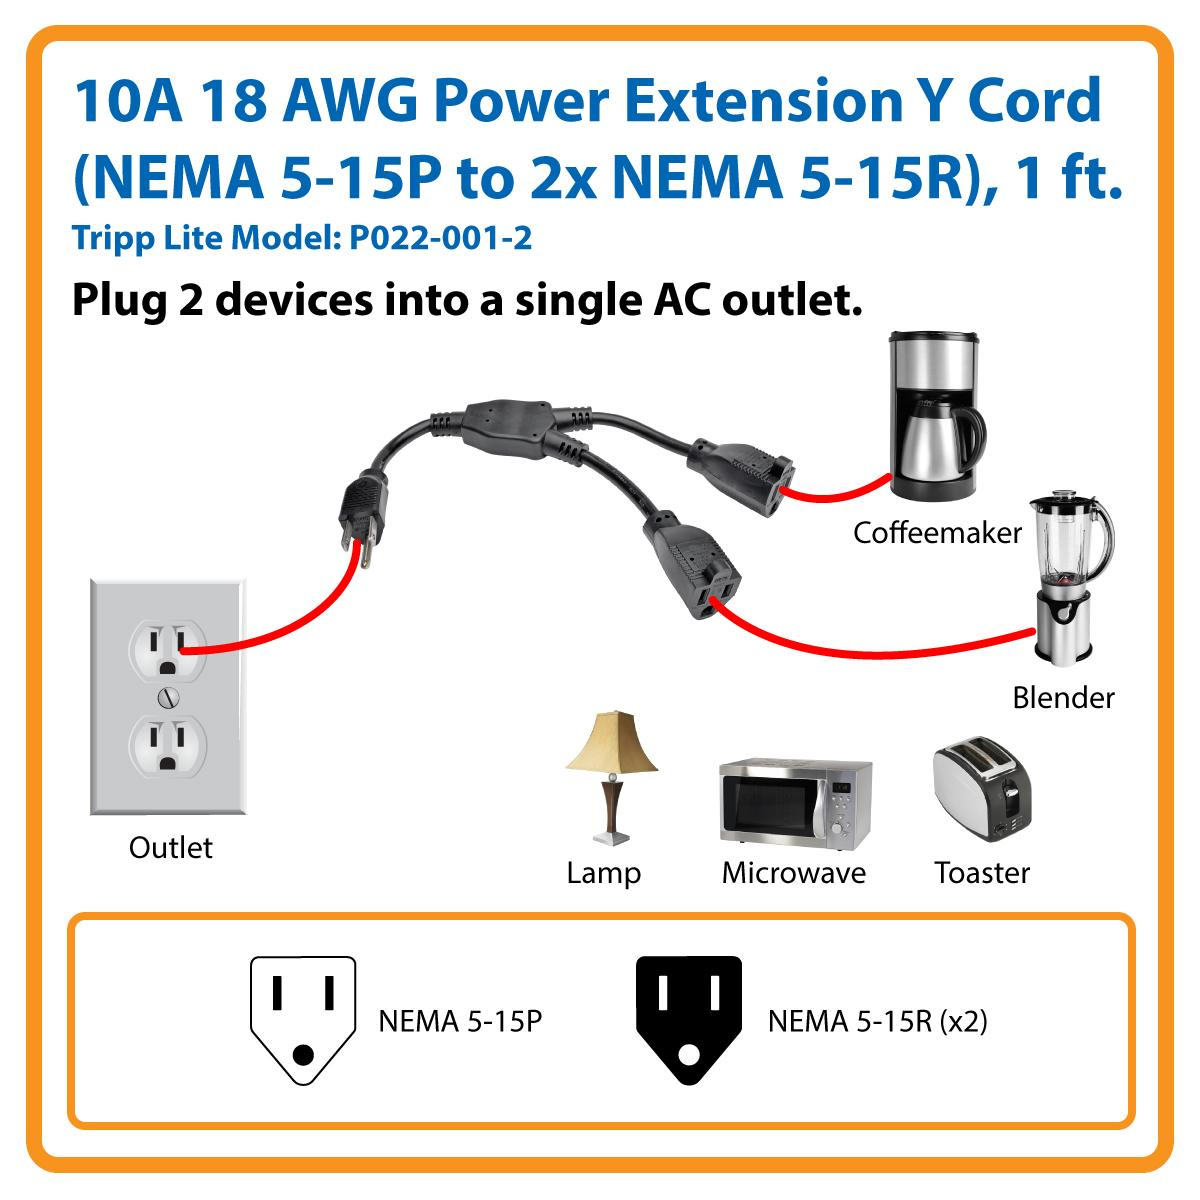 Tripp Lite Standard Power Extension Cord Y Splitter Wiring A 12 Volt Outlet Two Devices Using Only One